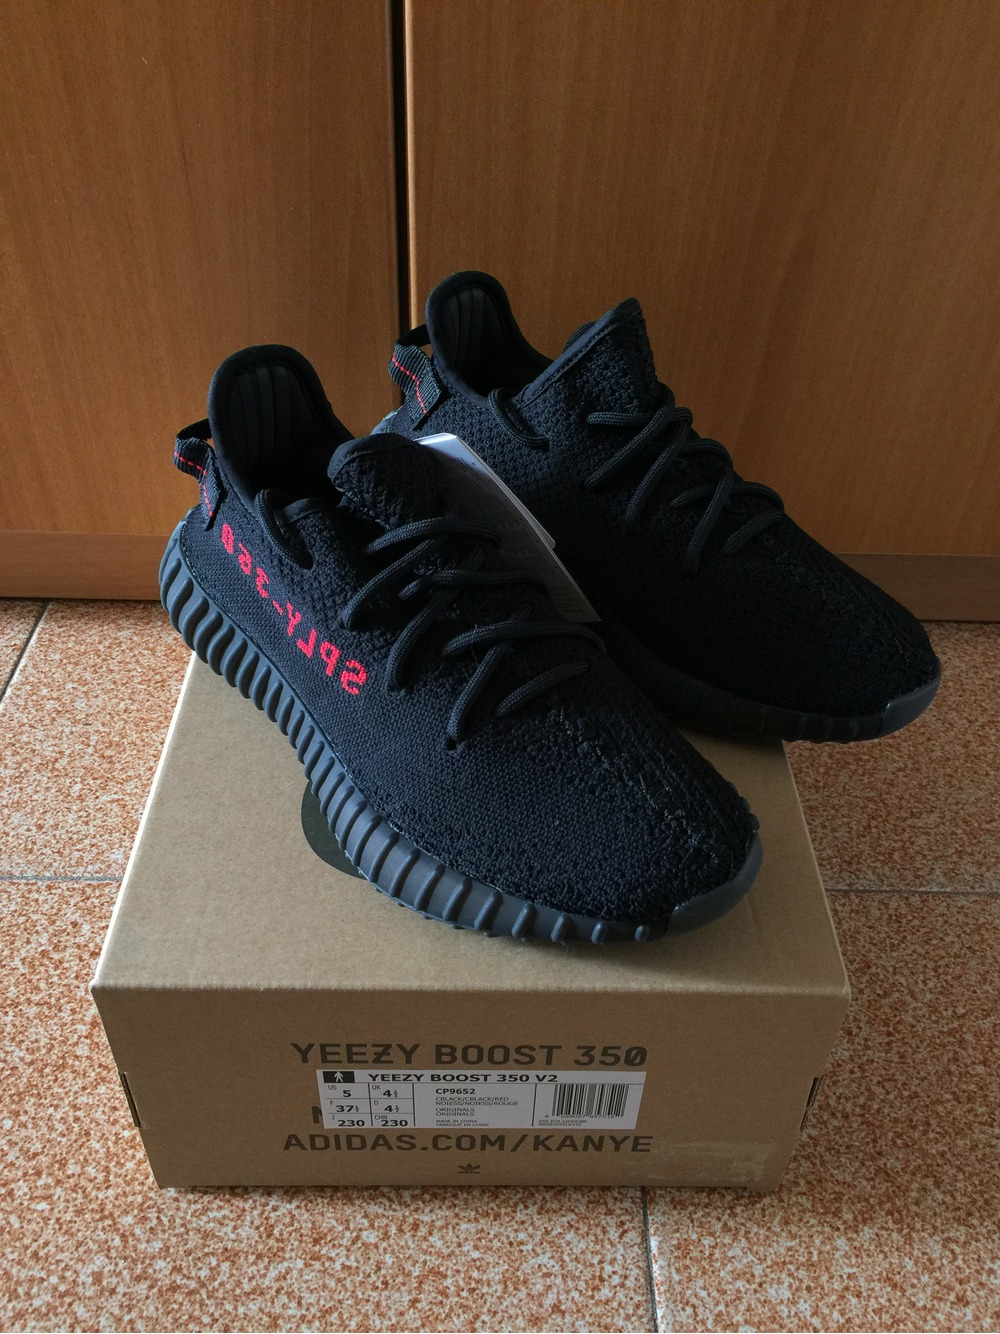 Yeezy 350 black BB5350 seeking identification - identification center tiger flutter equipment forum tiger flutter sports forum